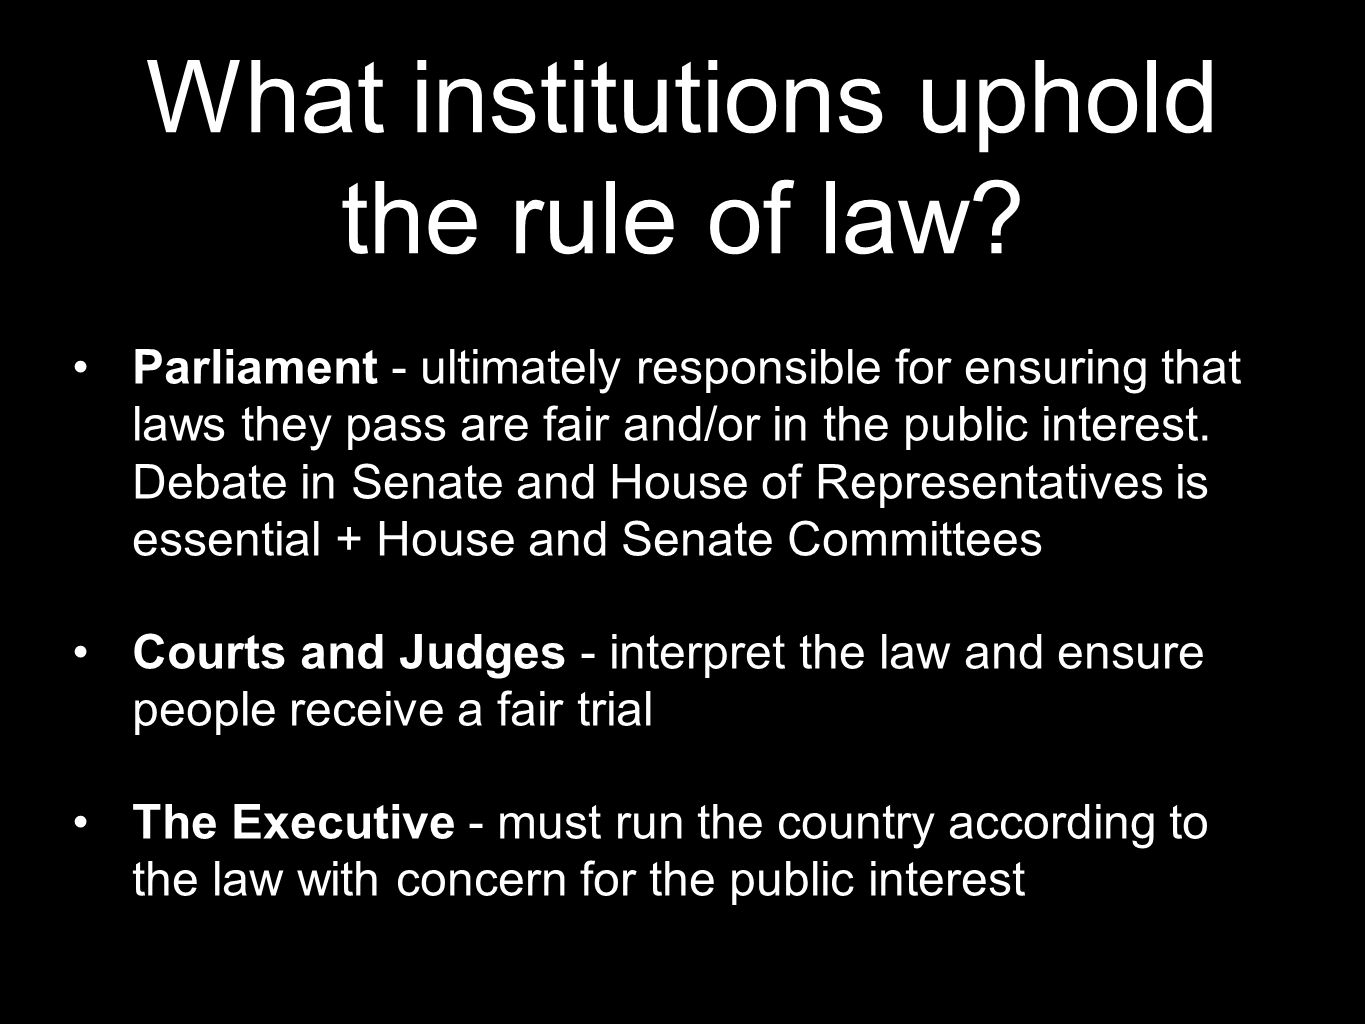 What institutions uphold the rule of law